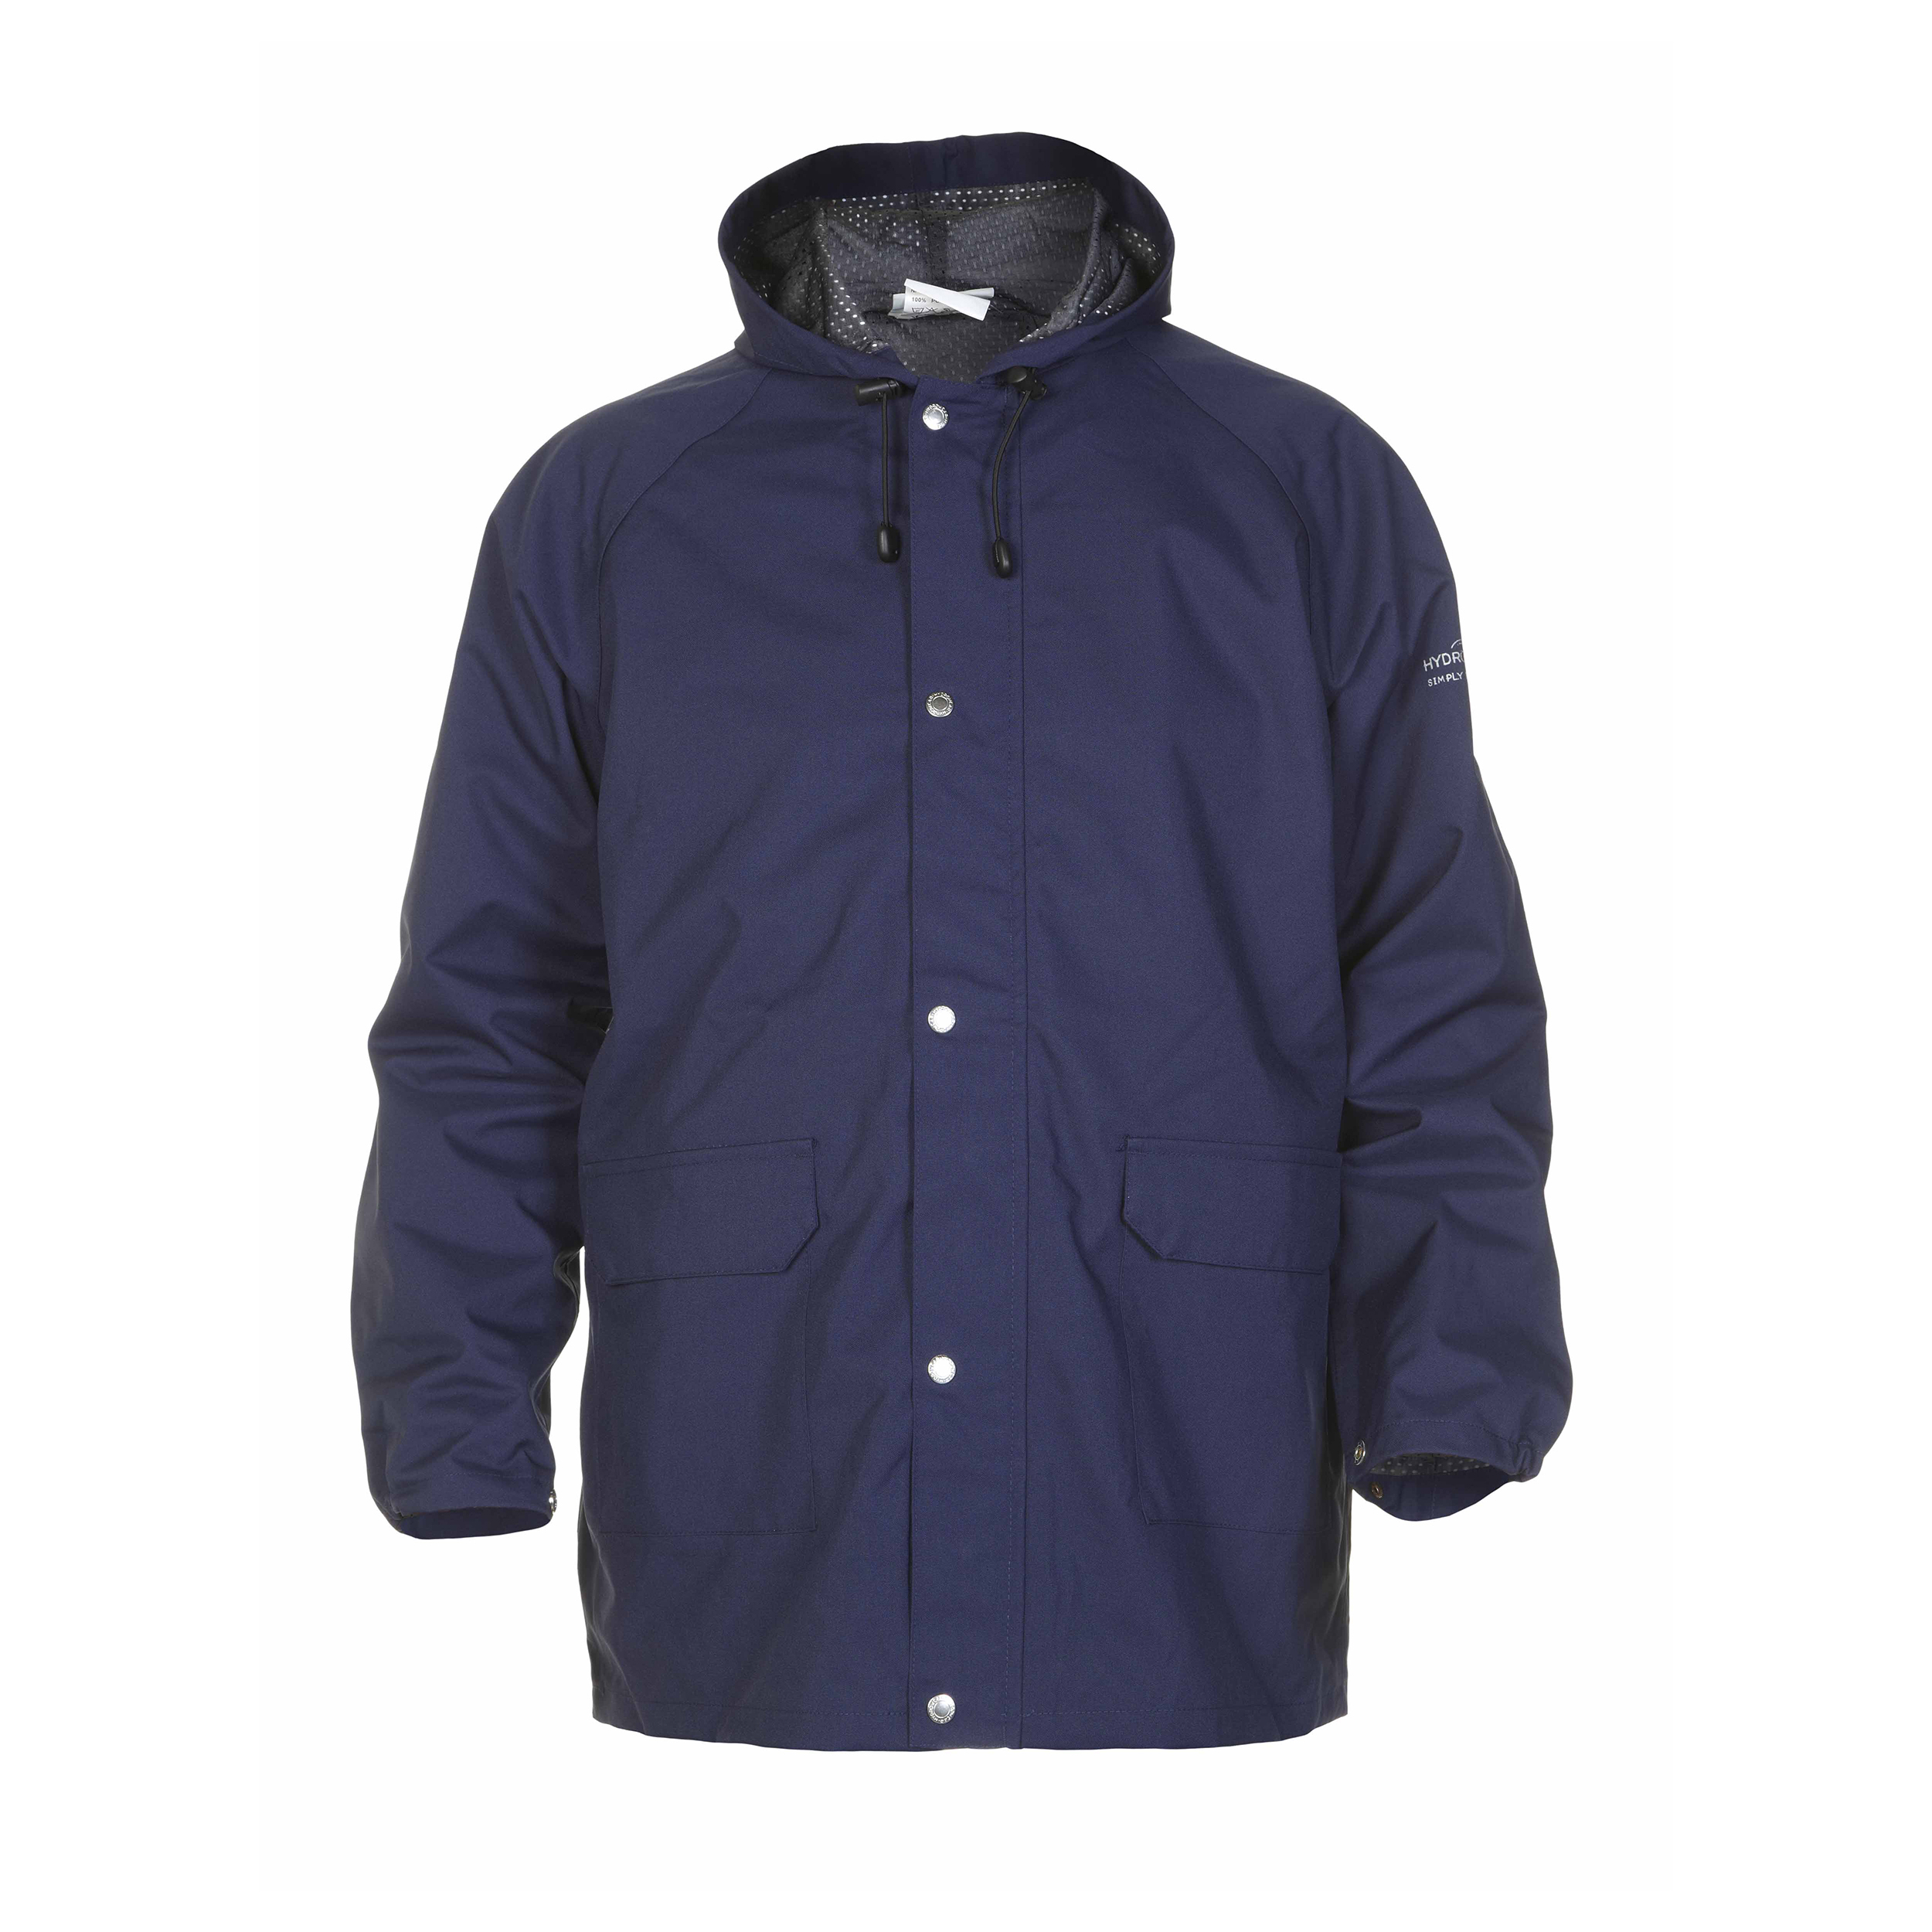 Mens coats or jackets Hydrowear Ulft SNS Waterproof Jacket Polyester 3X Large Navy Blue  Ref HYD072400N3XL*Upto 3 Day Leadtime*